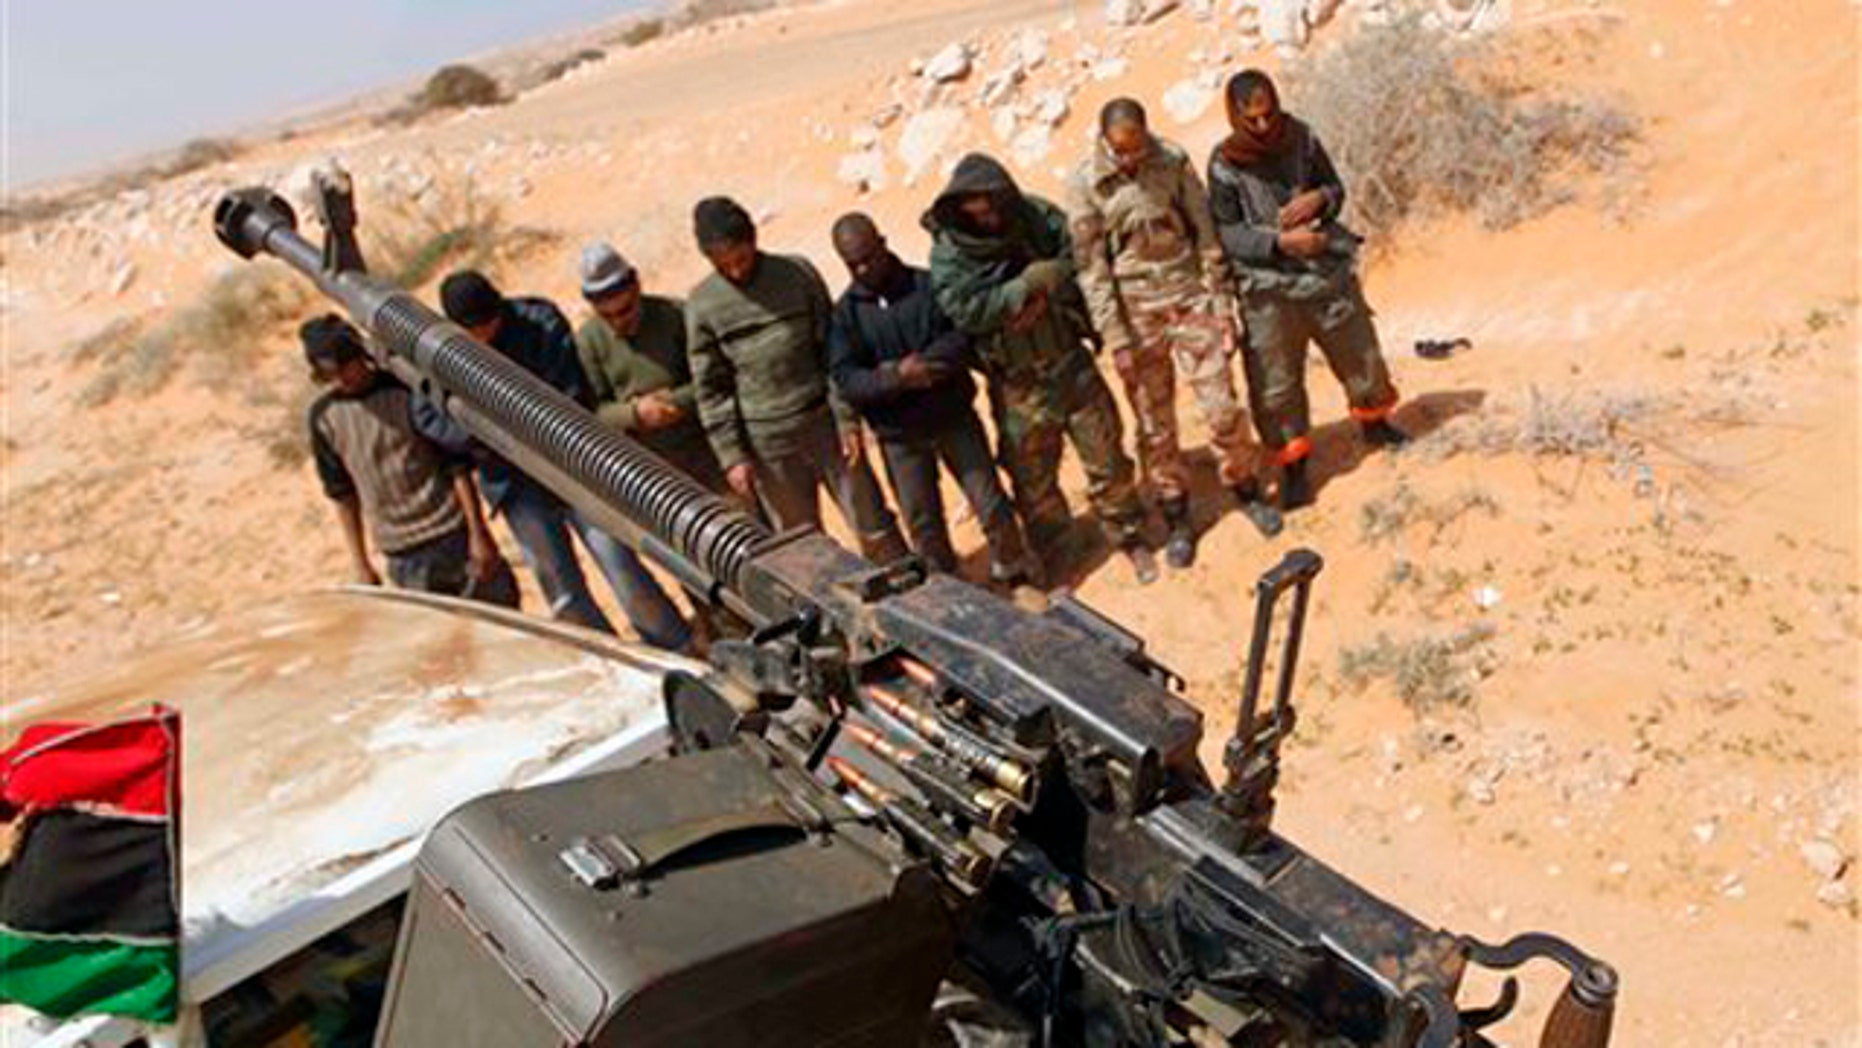 Libyan rebels pray 75 miles east of Sirte in eastern Libya March 28.